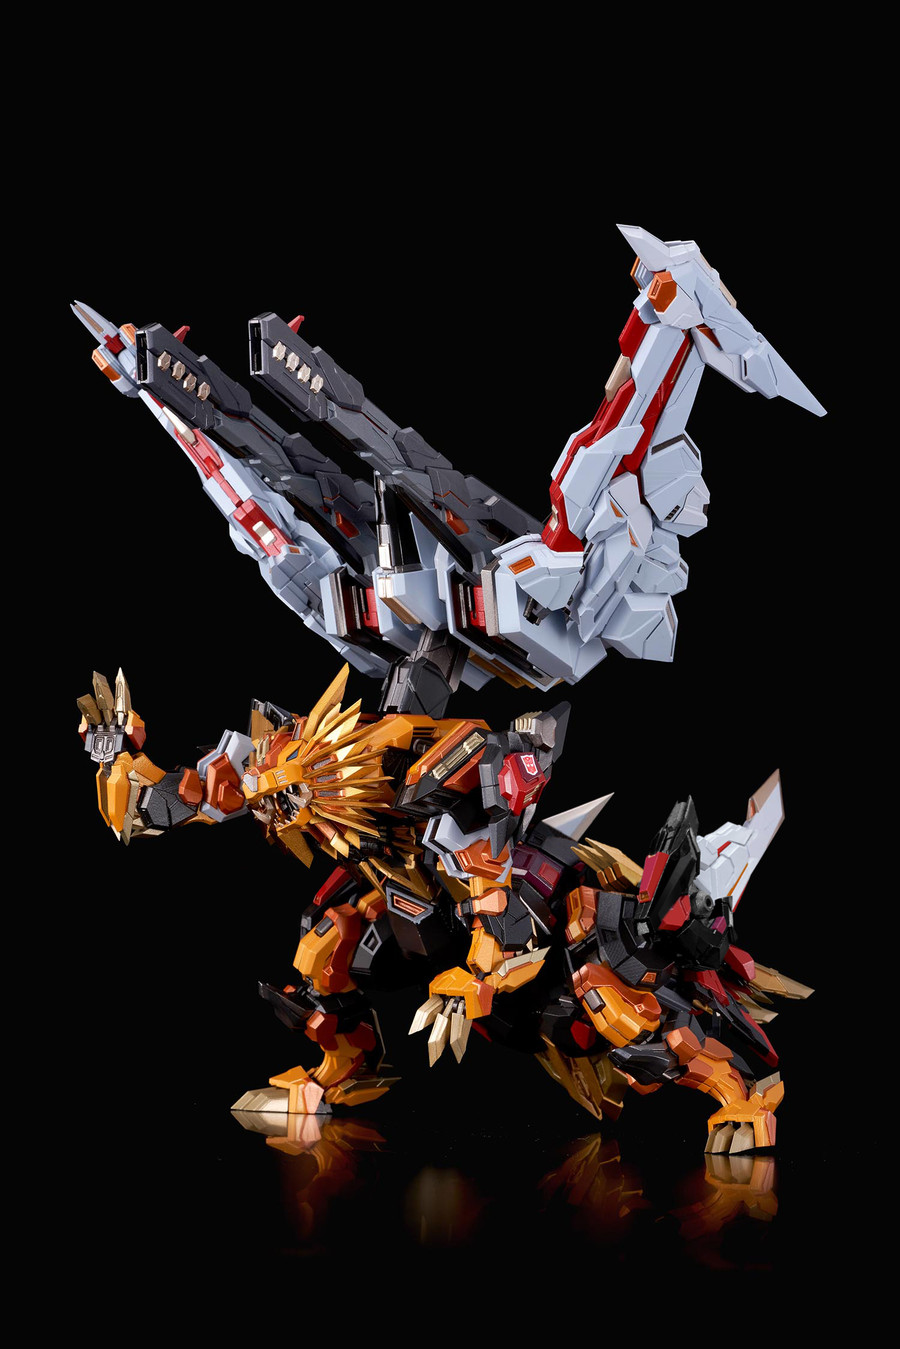 Flame Toys - Transformers Victory Leo